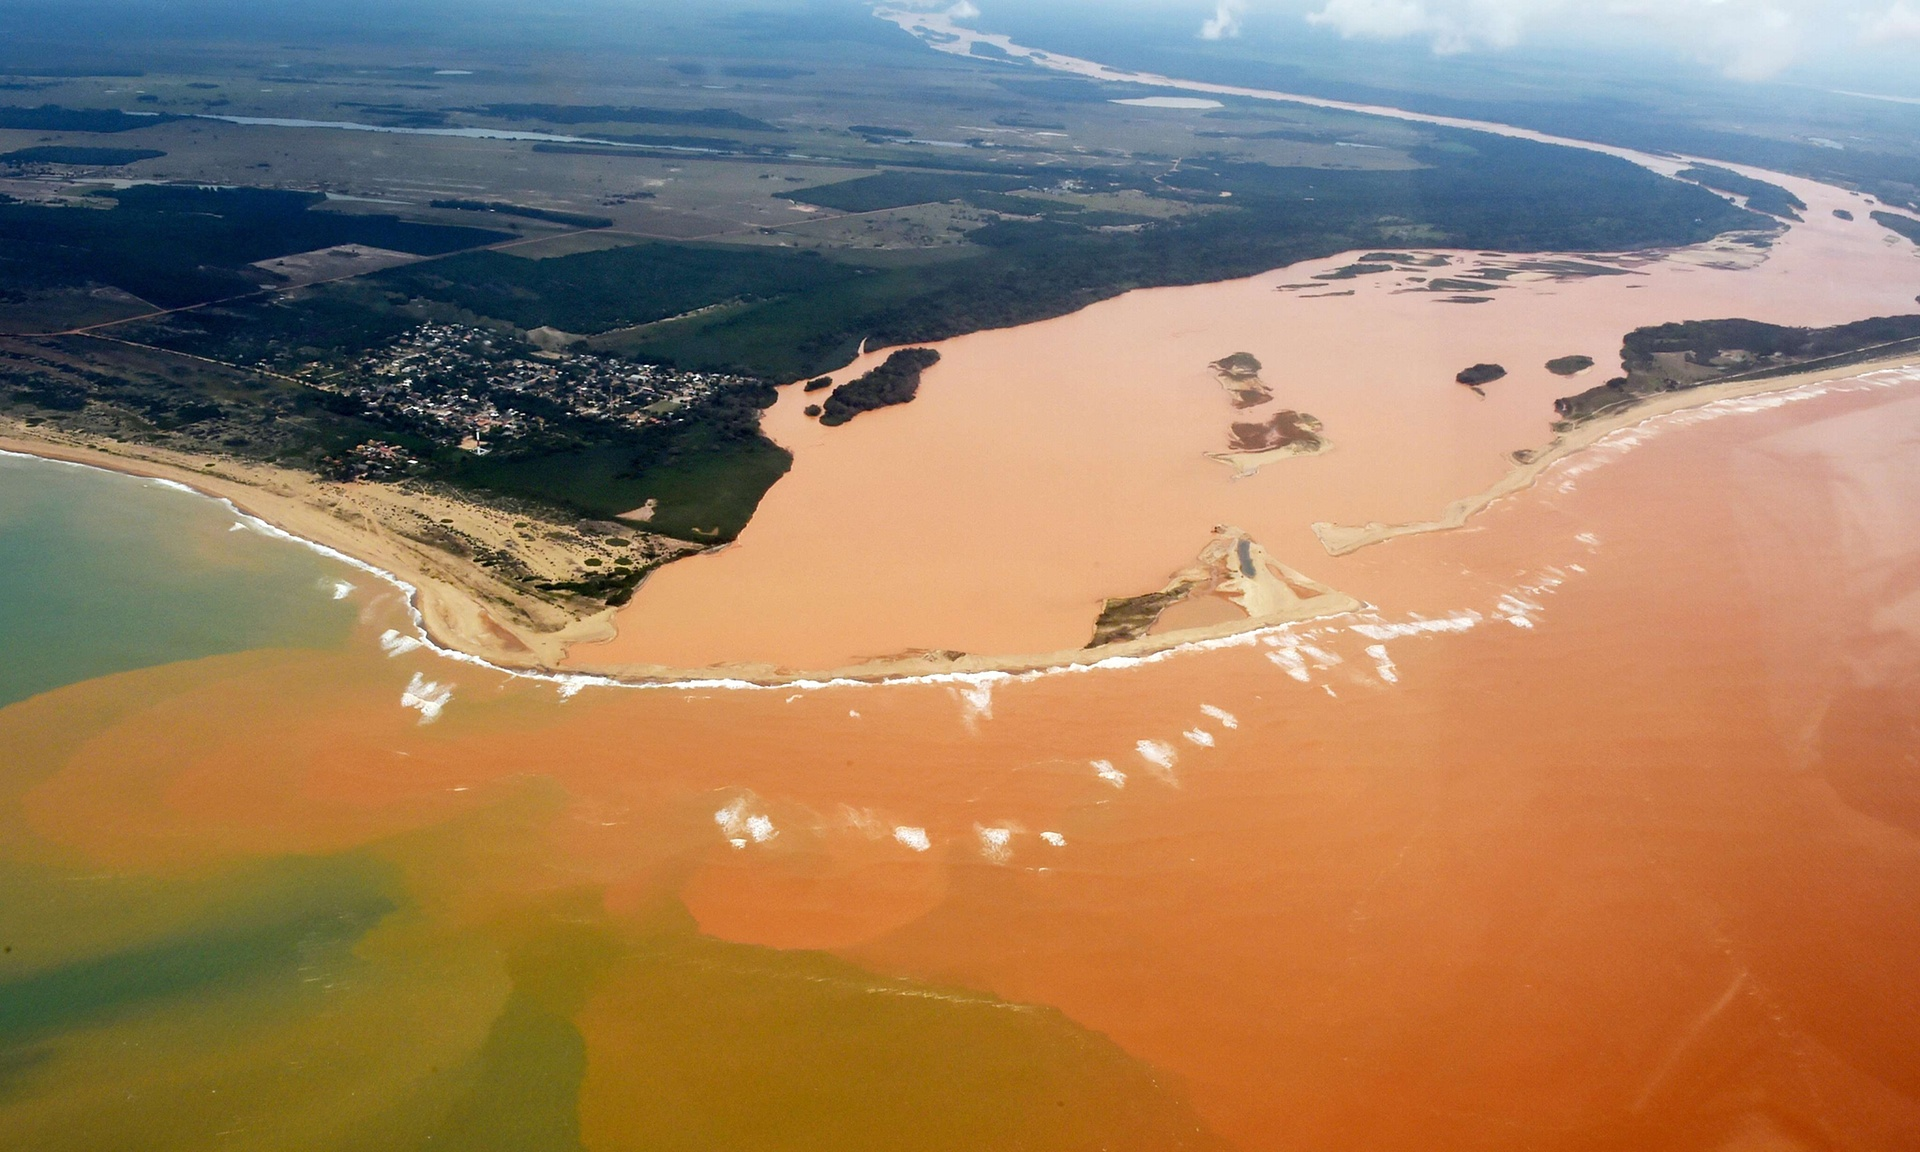 Mining disaster at Rio Dore, Brazil